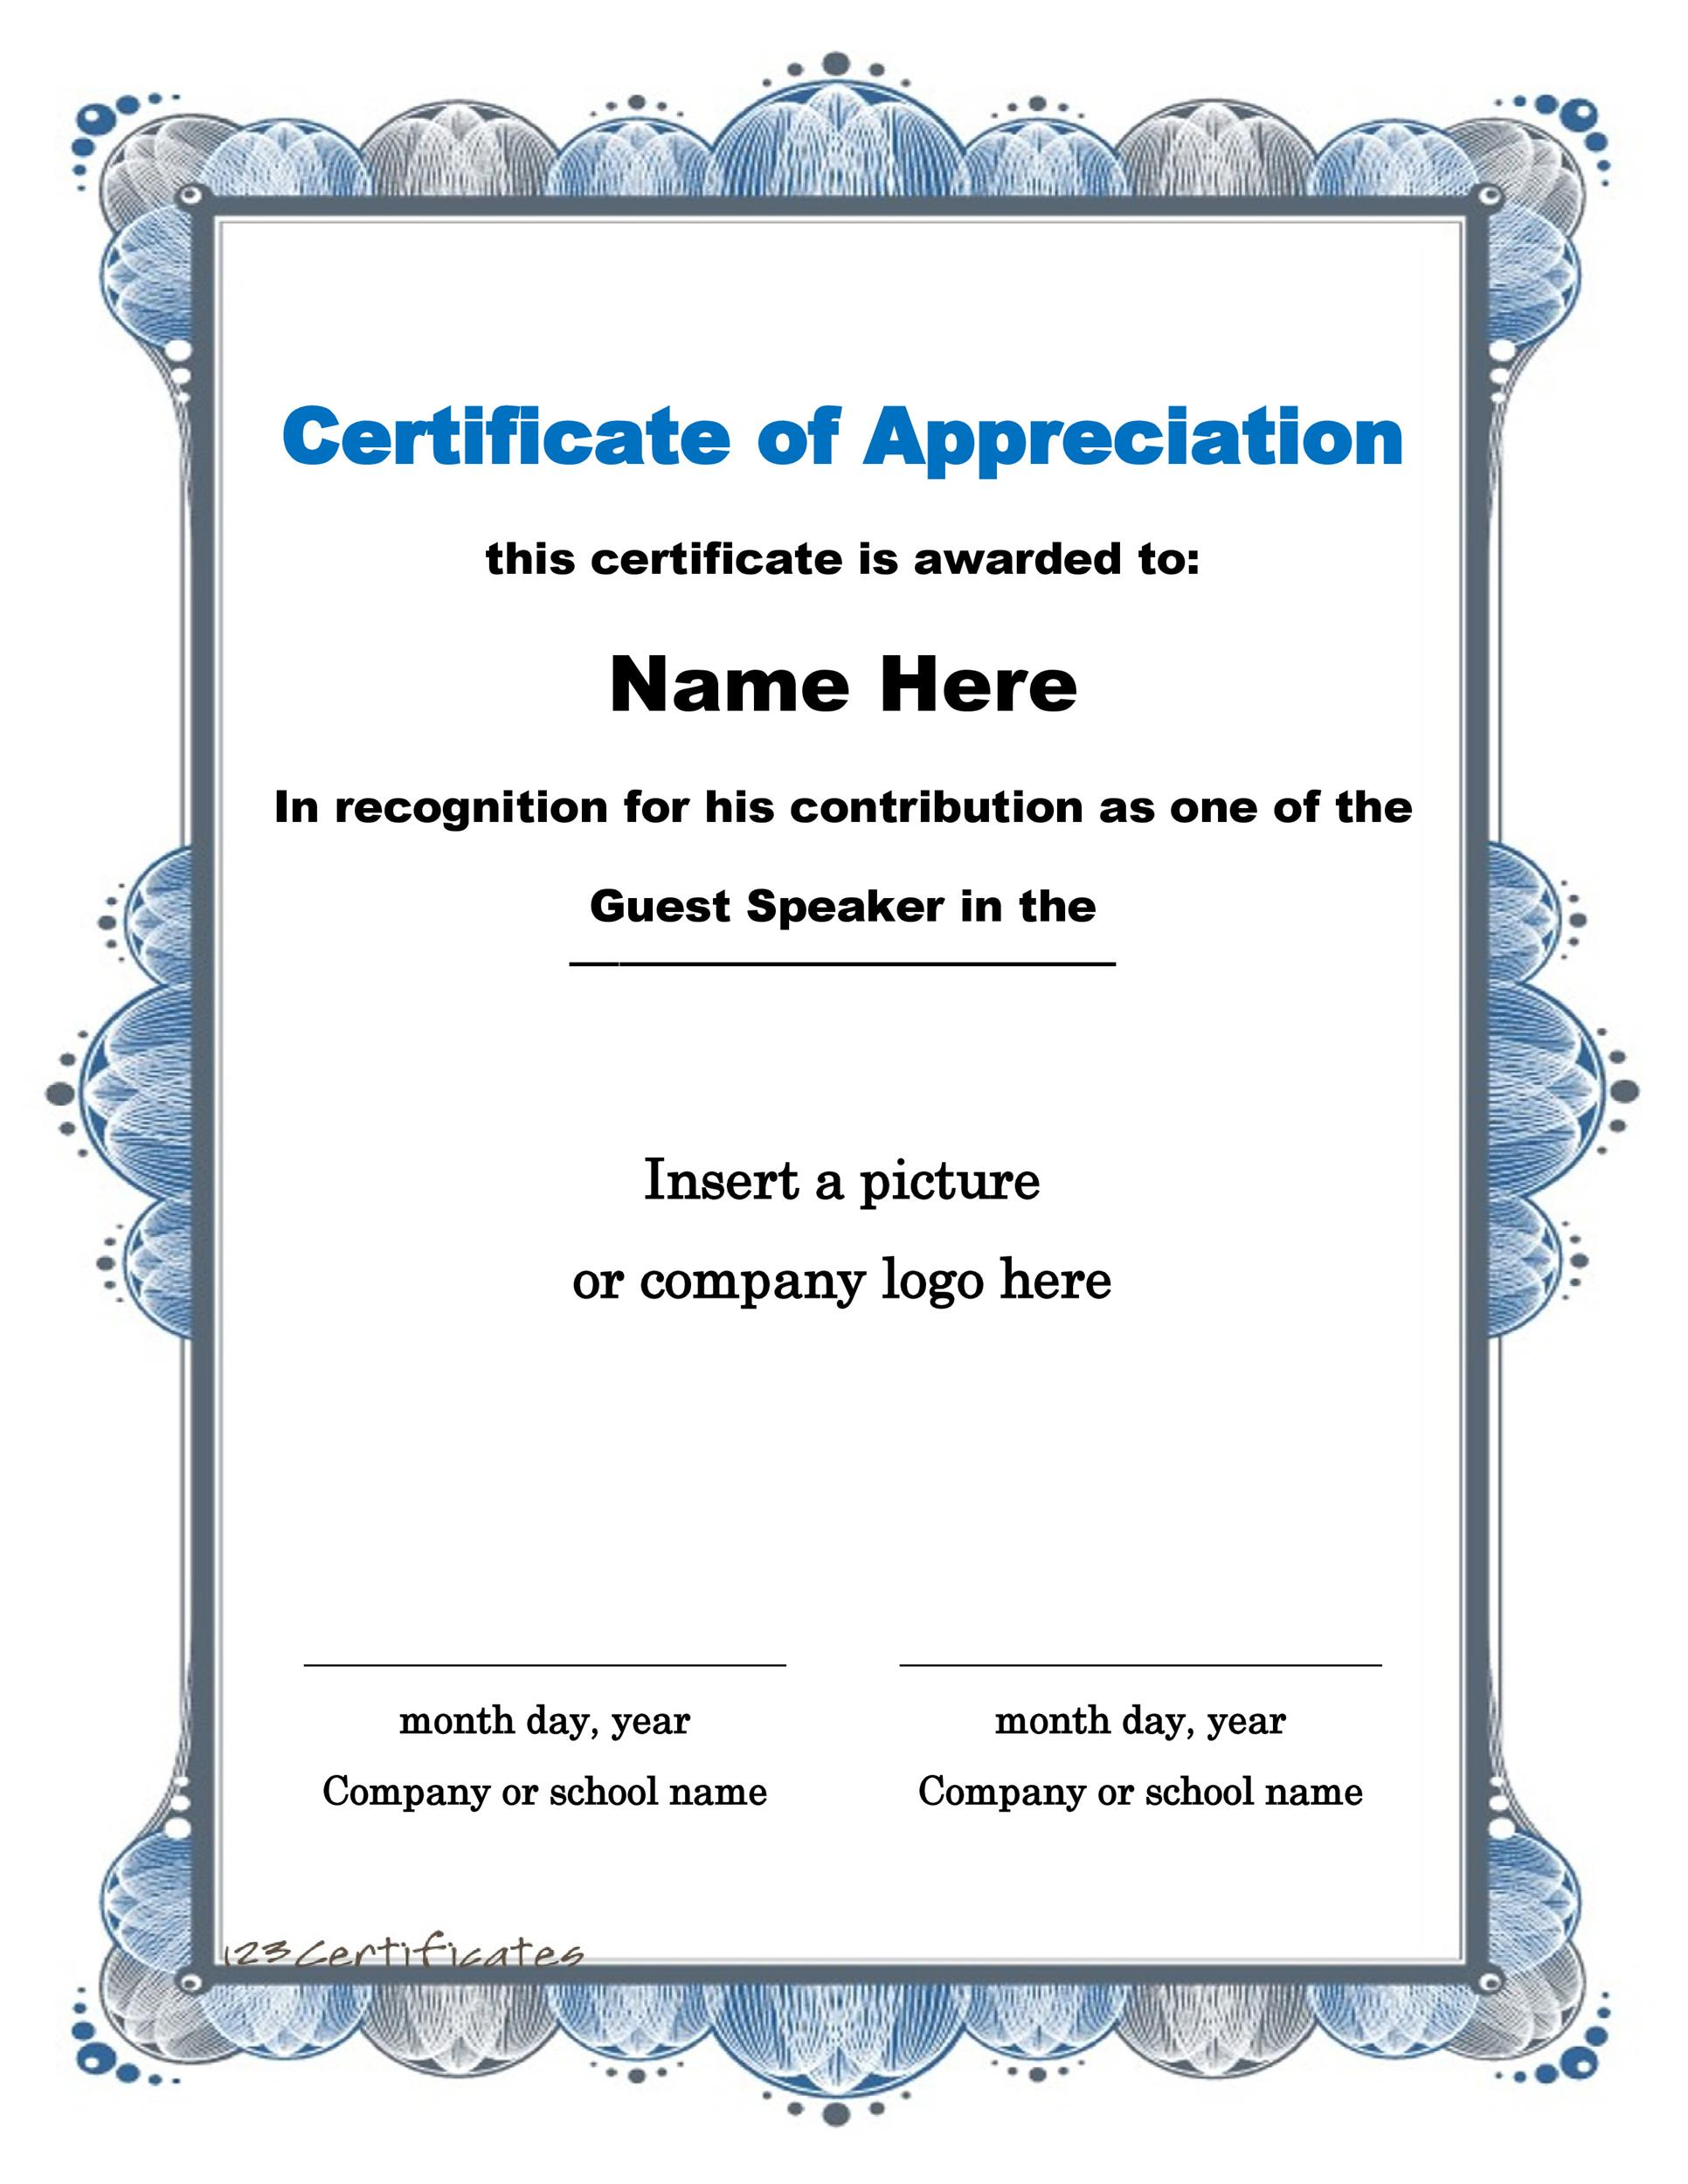 Printable Certificate Of Appreciation 02  Certificate Of Recognition Samples